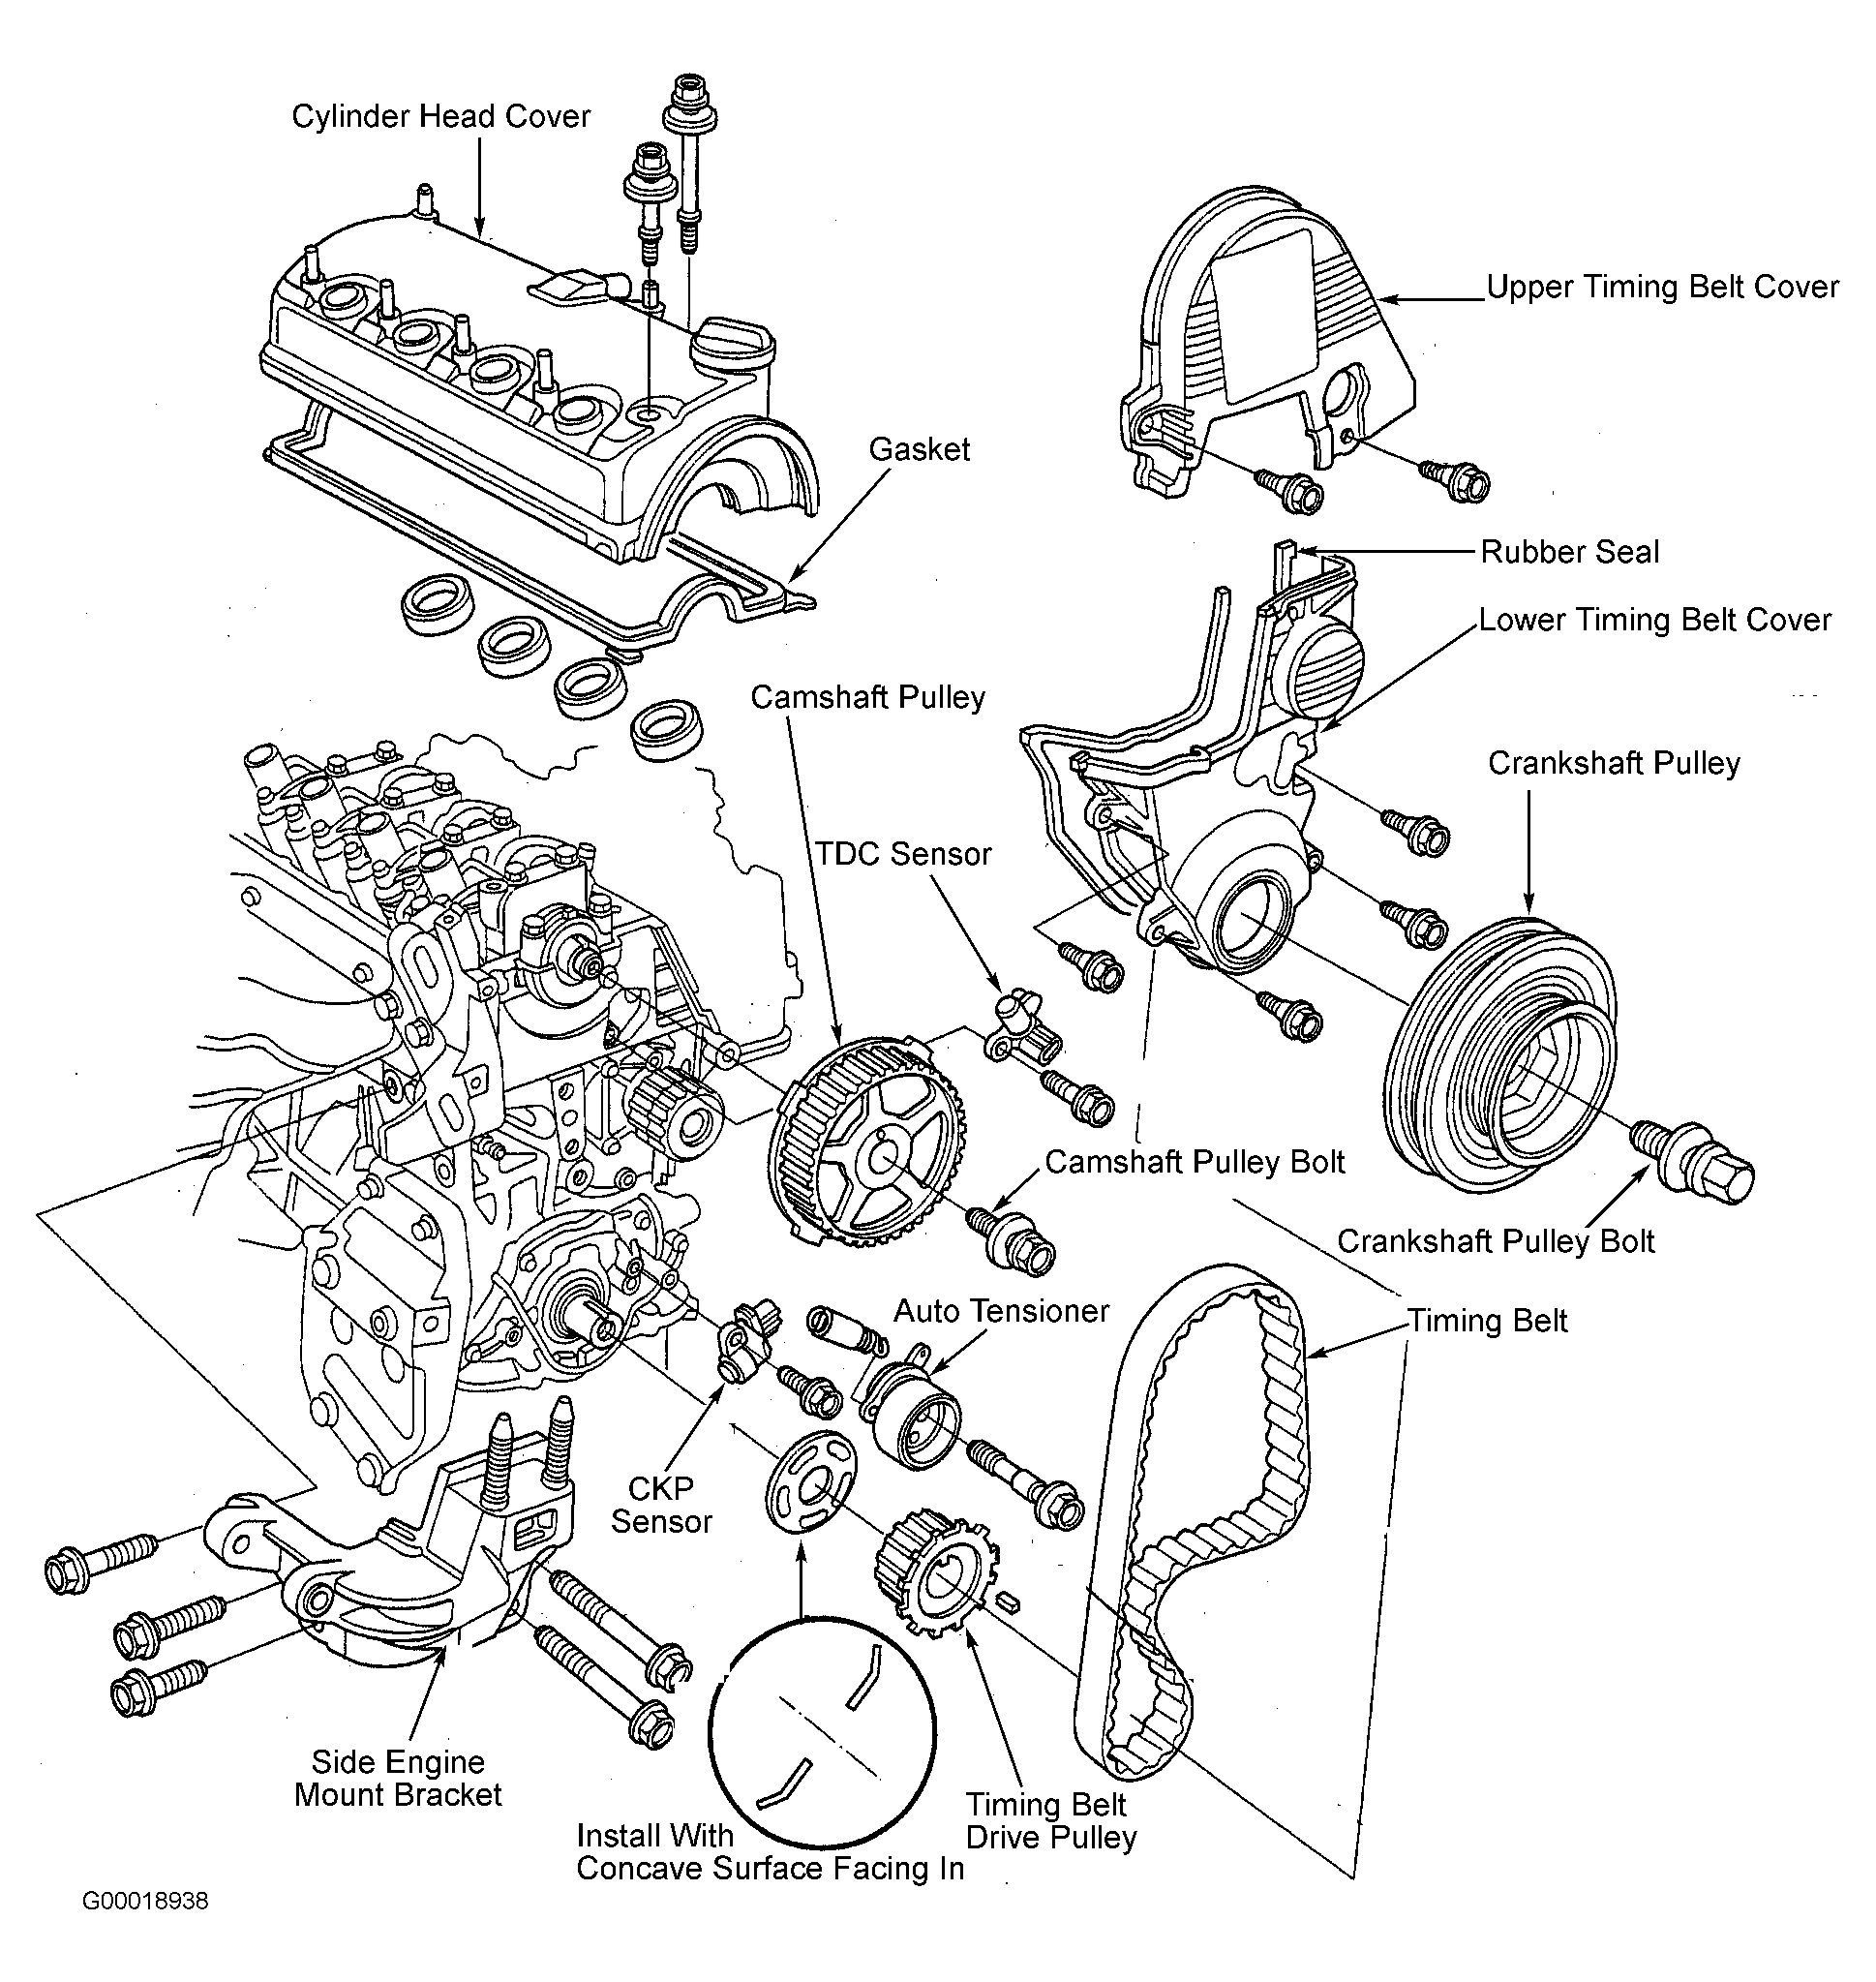 [FPER_4992]  Honda Crv Engine Diagram Unlimited Wiring Diagram 2004 Honda CR-V Engine  Diagram 2003 Honda Crv Engine Diagram #3 in 2020 | Honda crv, Honda, Diagram | 2003 Honda Crv Engine Diagram |  | Pinterest